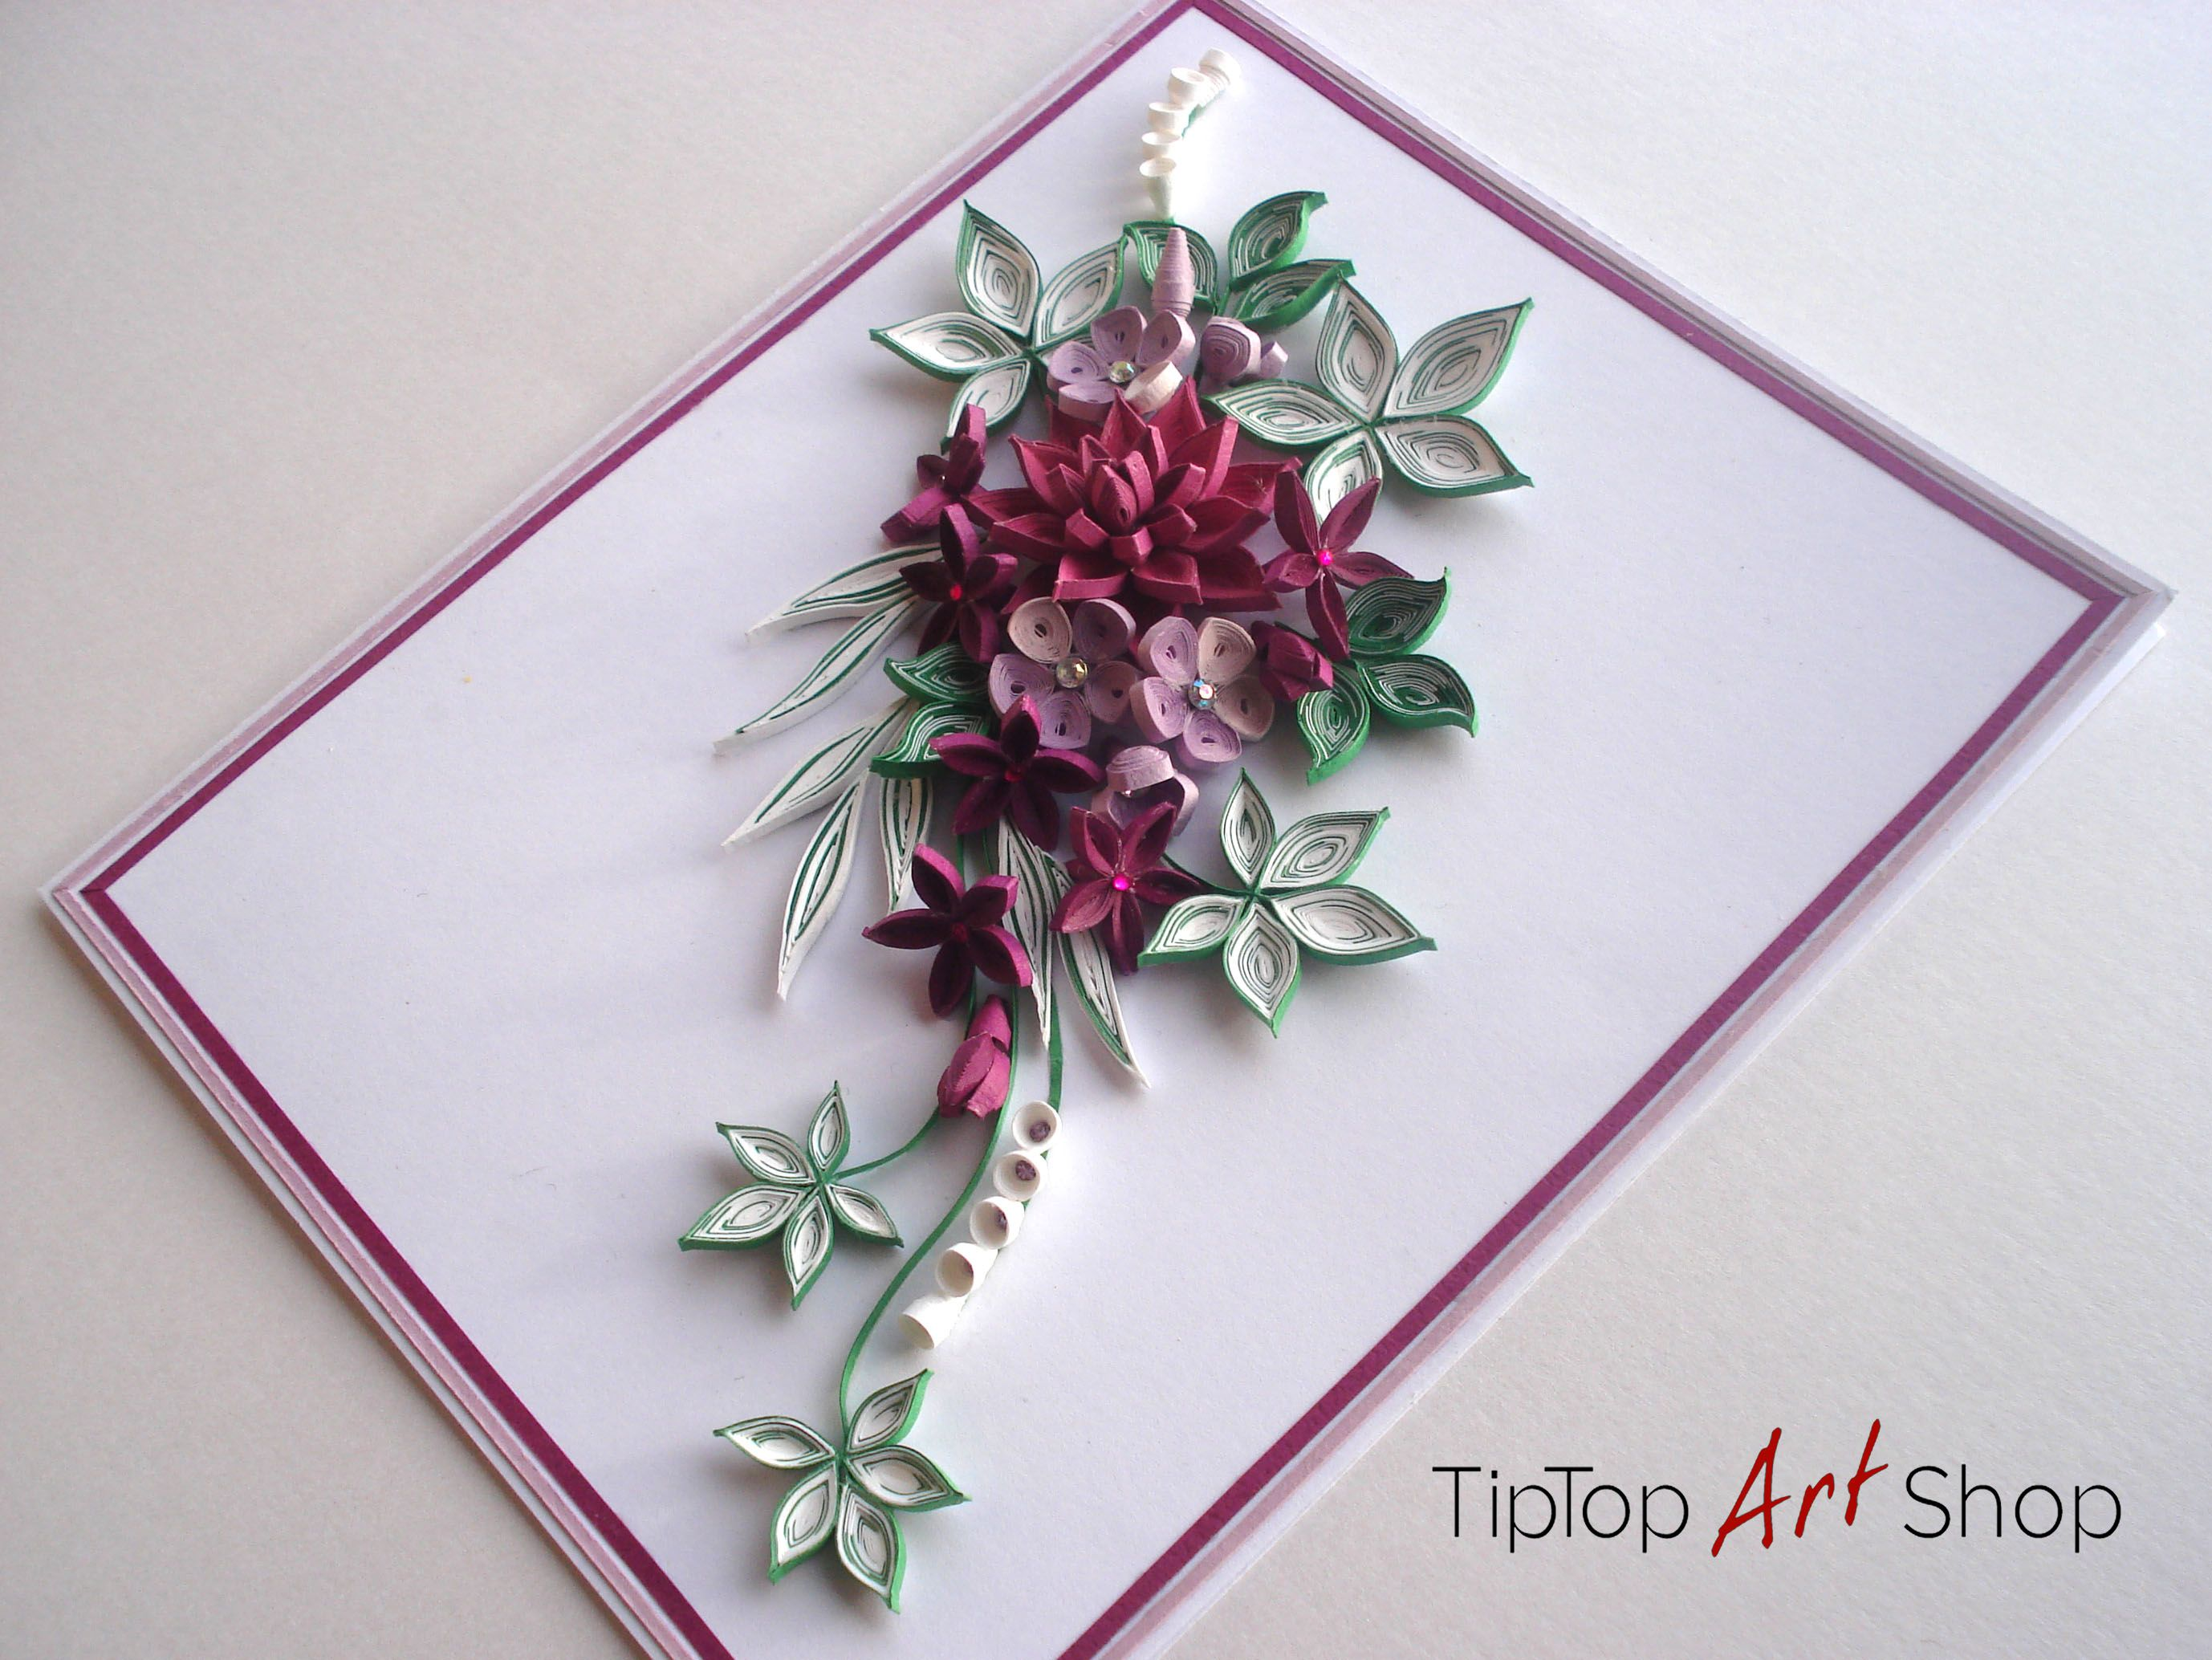 quilled handmade greeting card with 3d paper flowers for birthdays